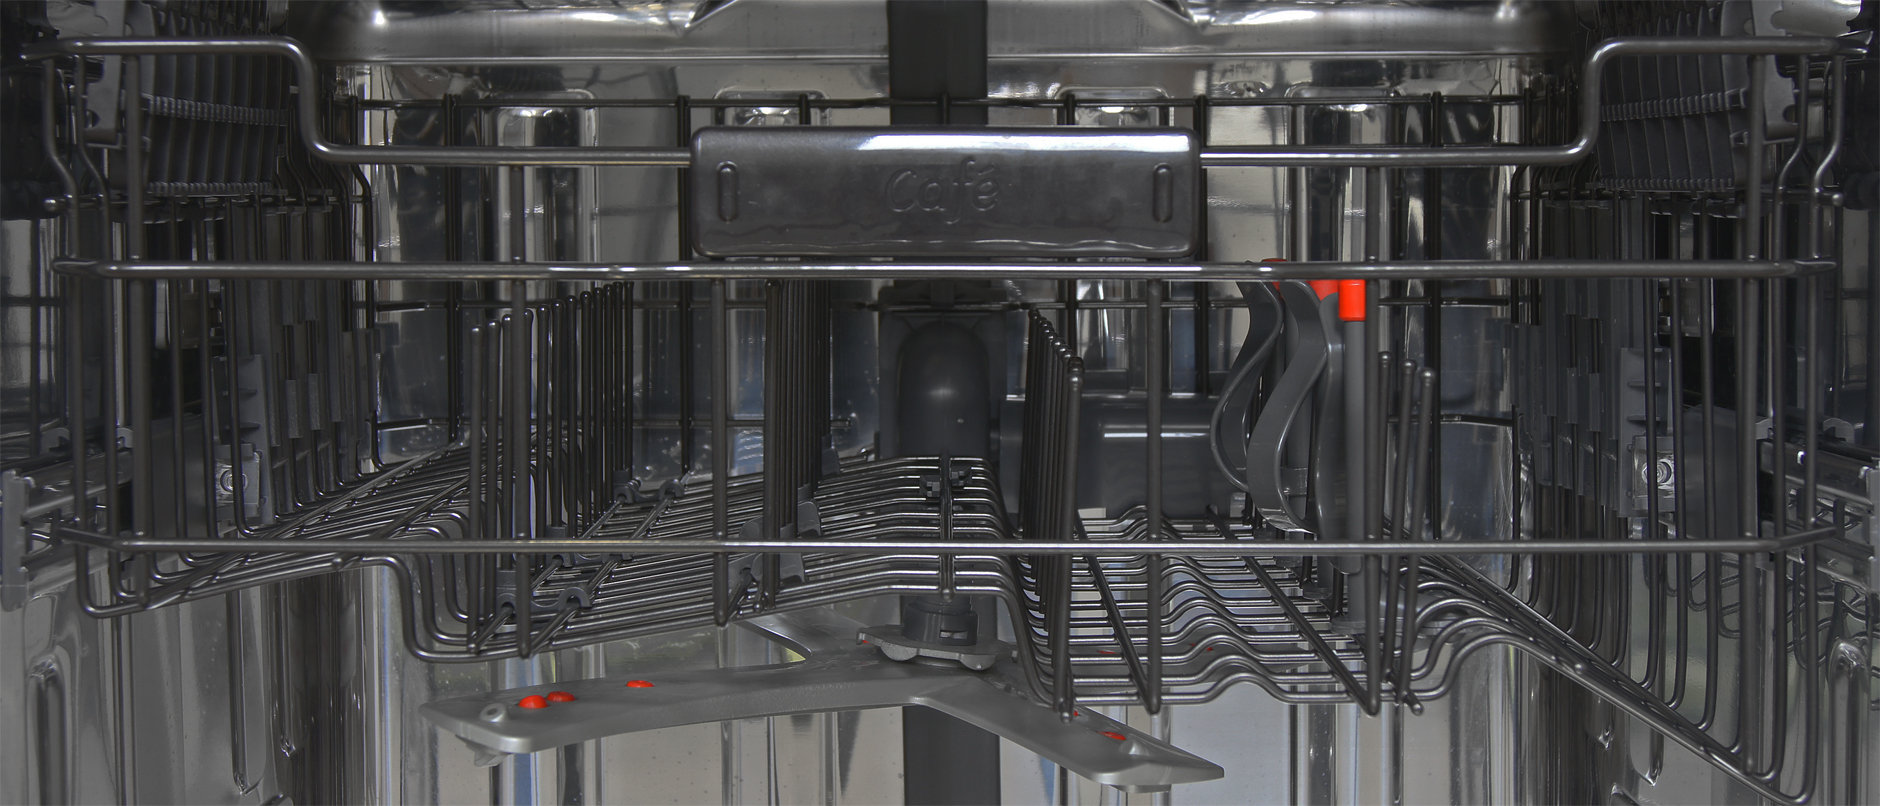 GE Cafe CDT725SSFSS close up of top rack